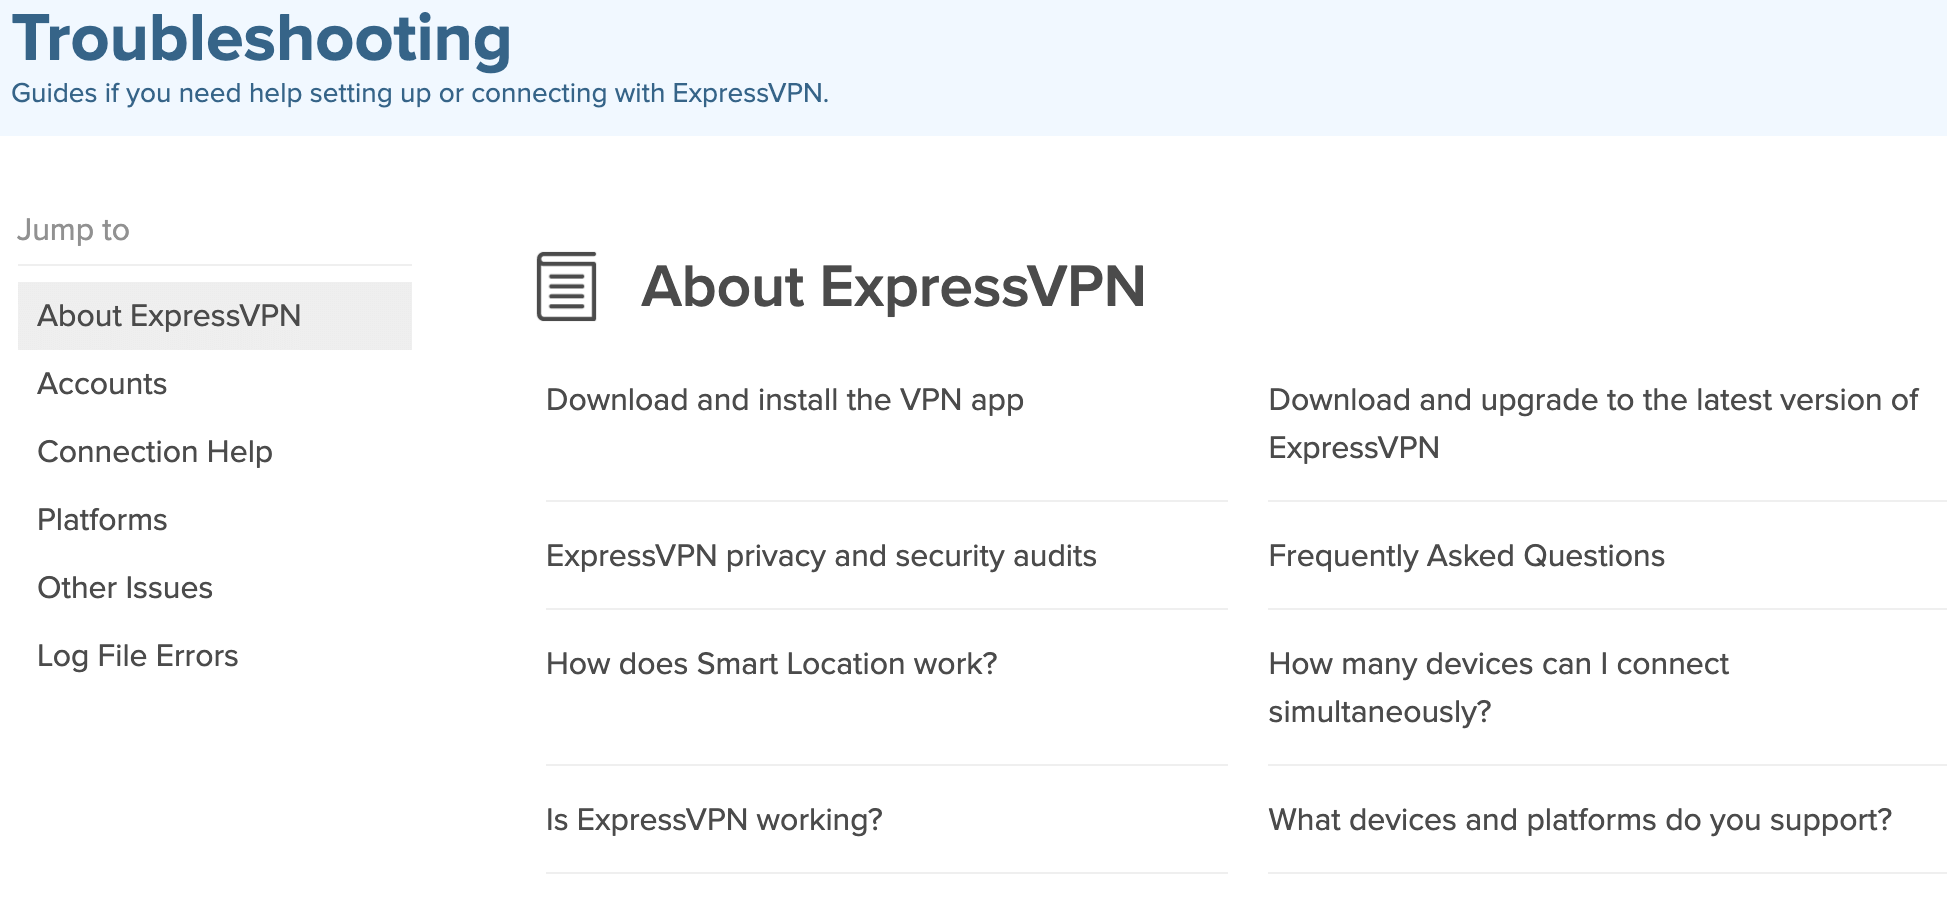 ExpressVPN Customer Support